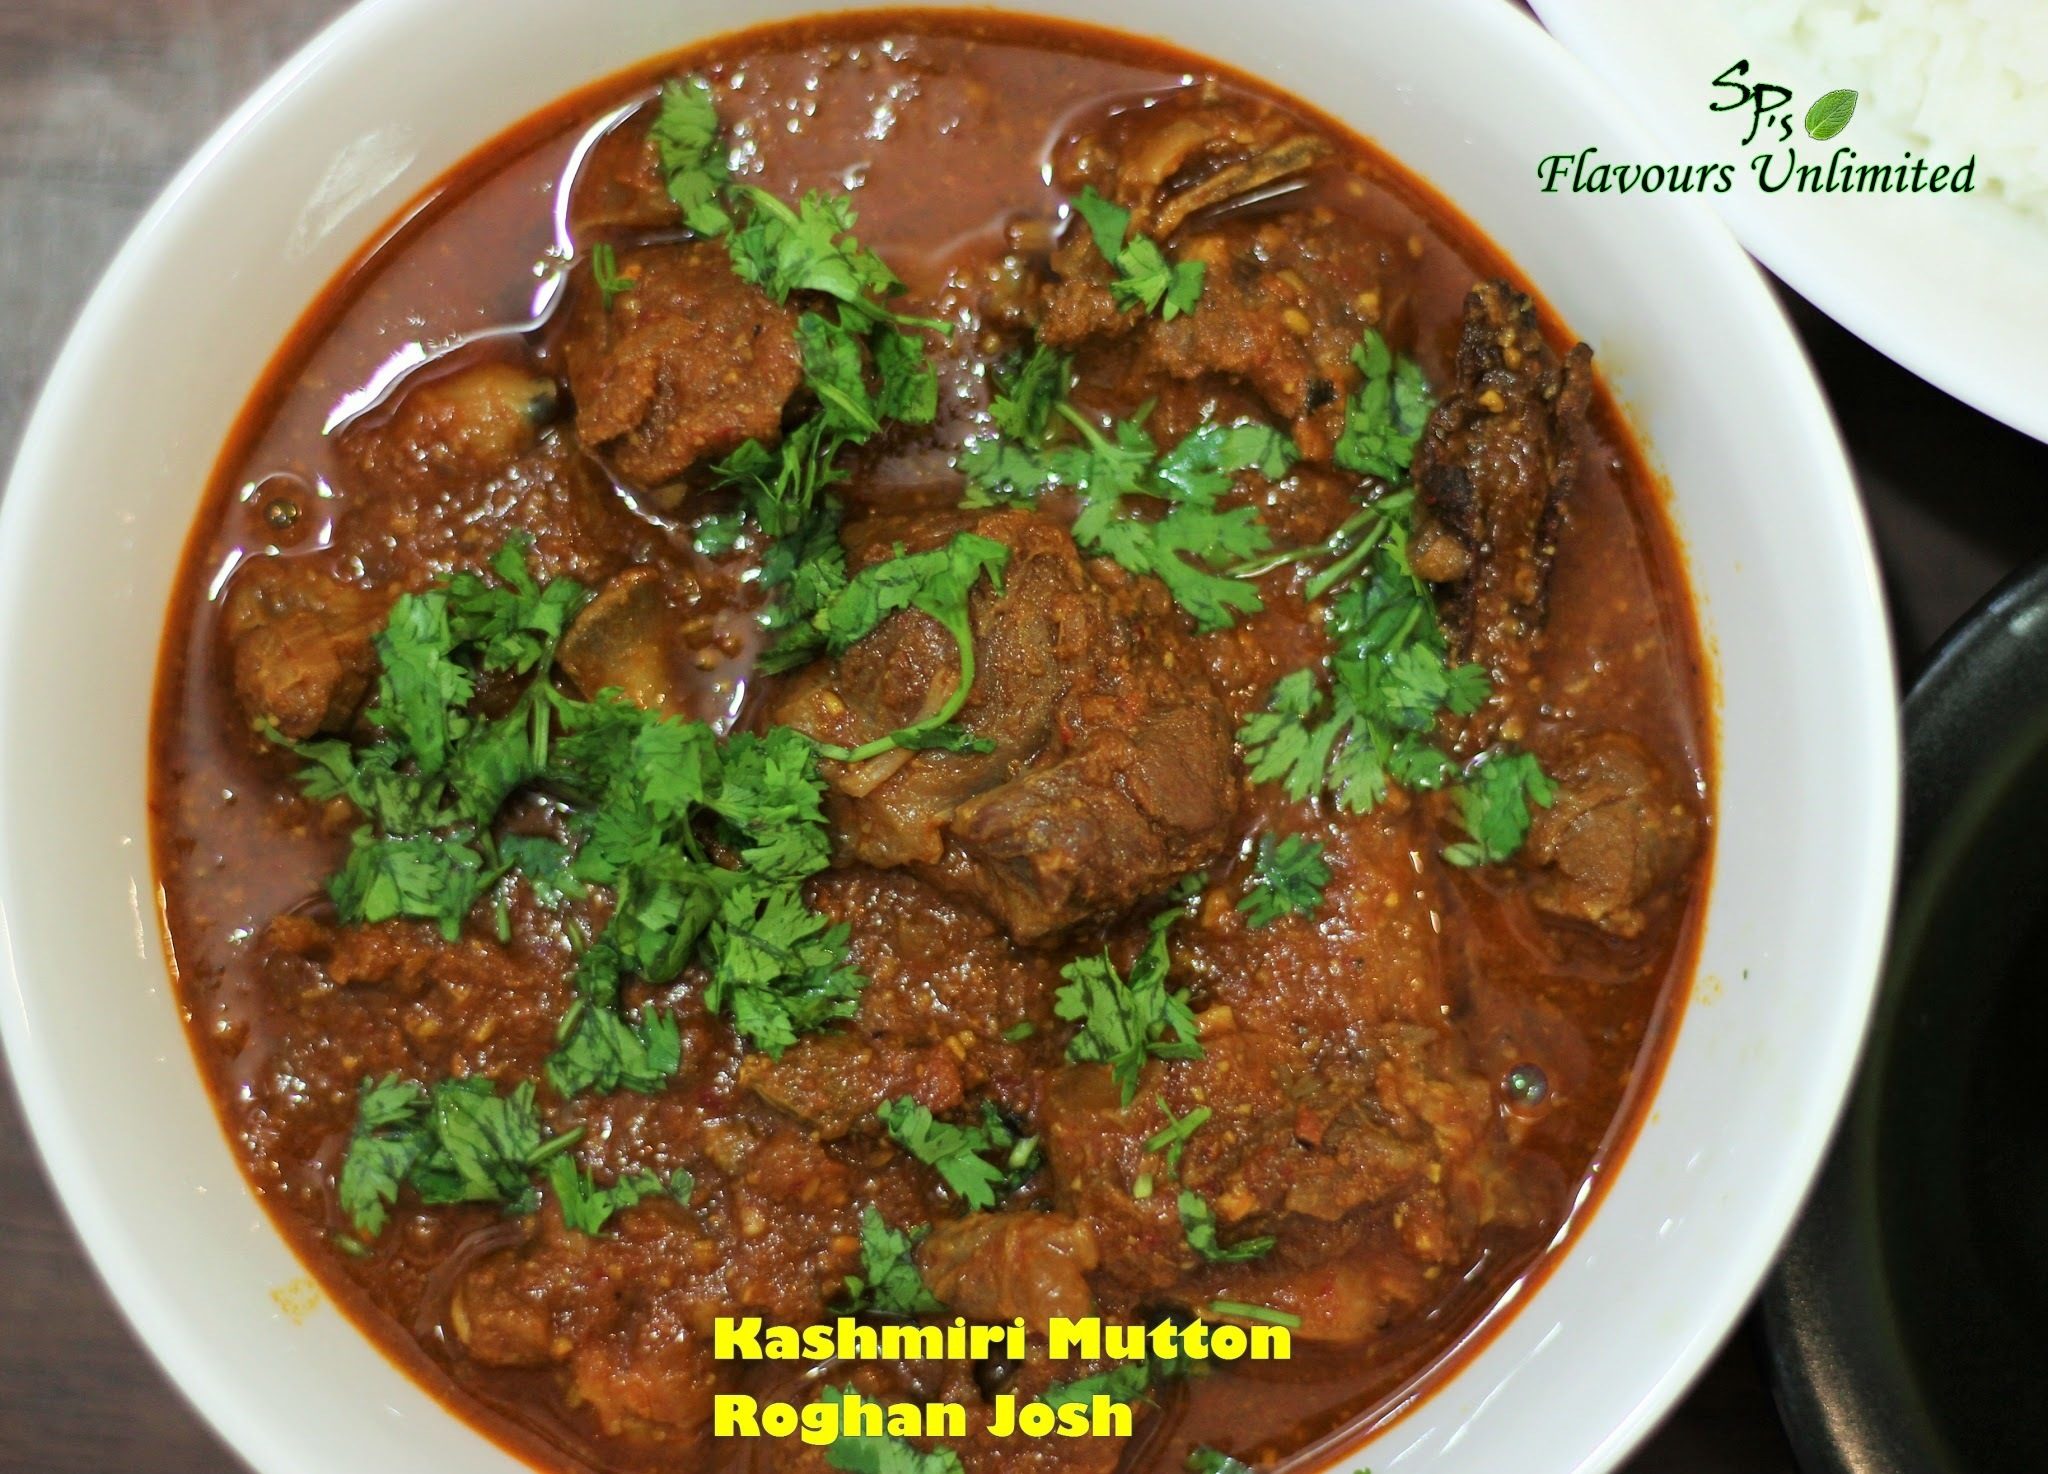 Mutton Roghan Josh - A medium spicy kashmiri dish